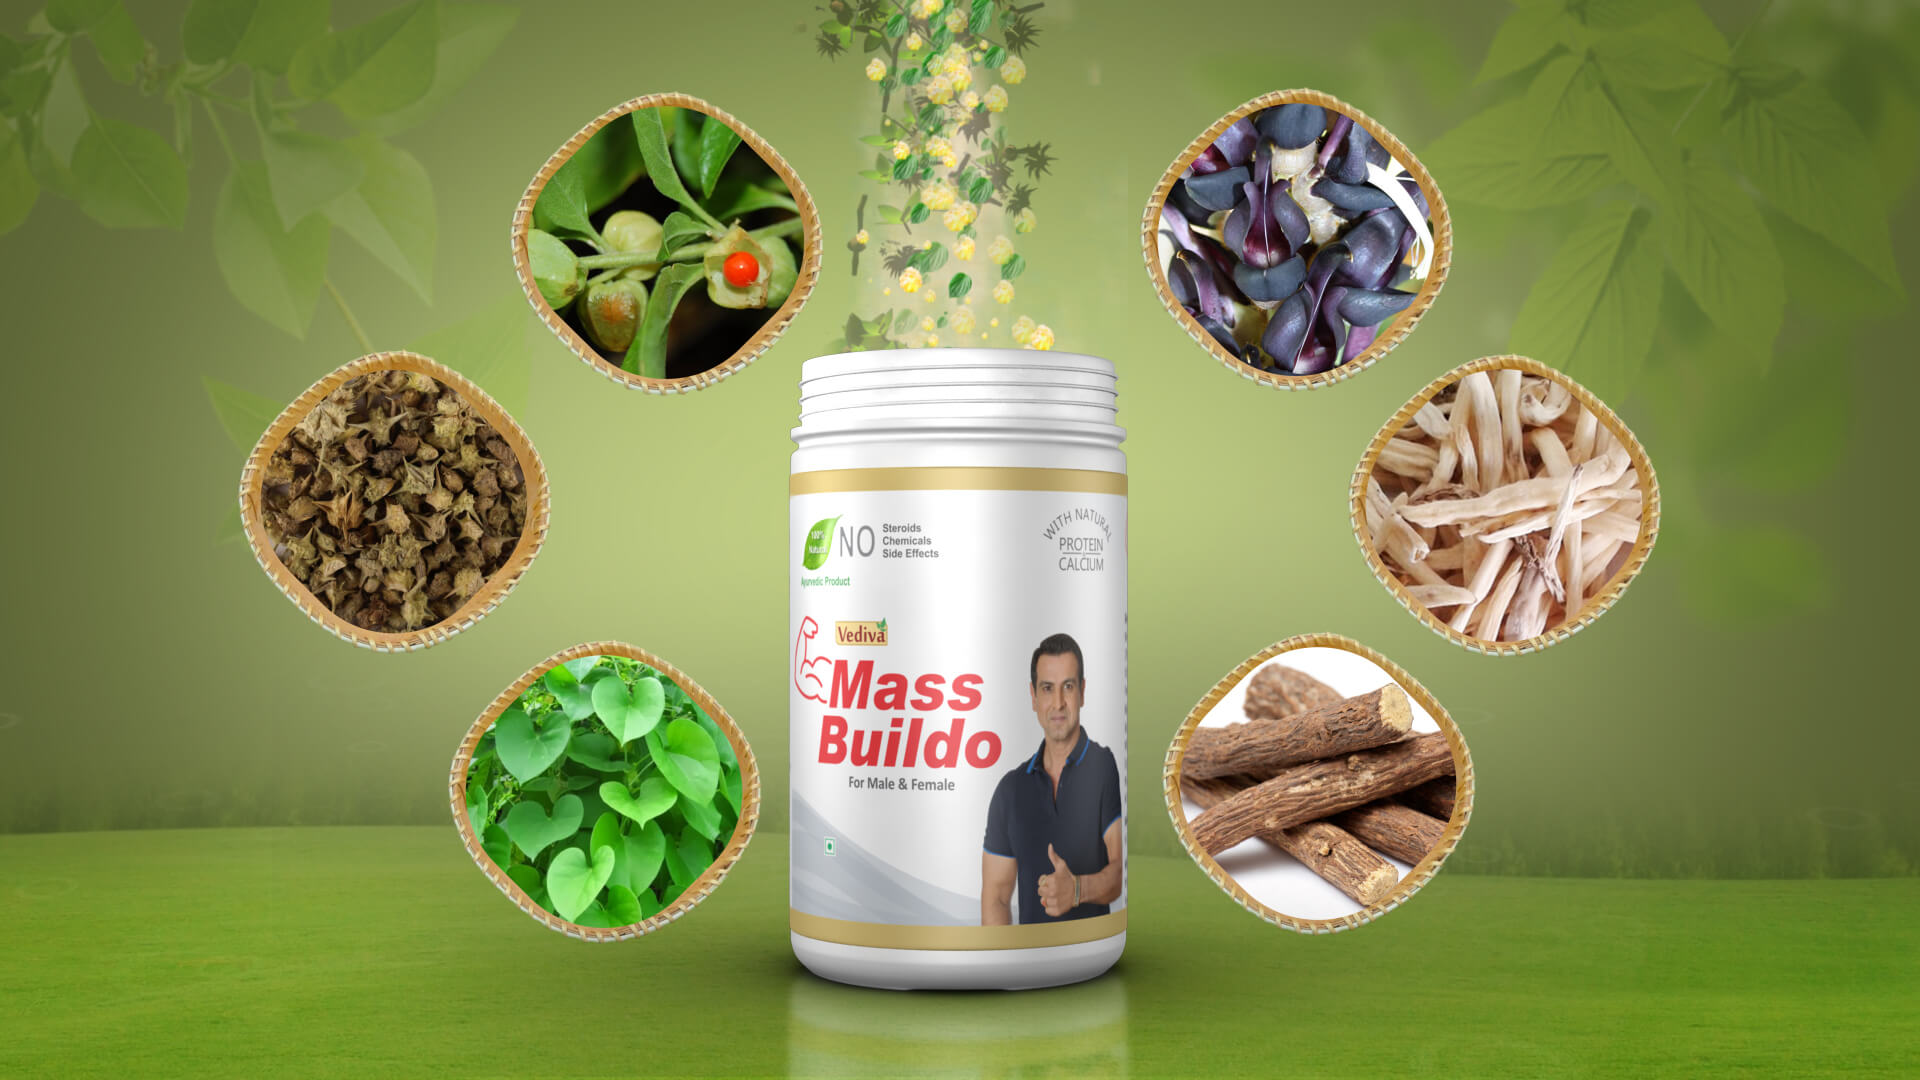 Mass Buildo Ingredients